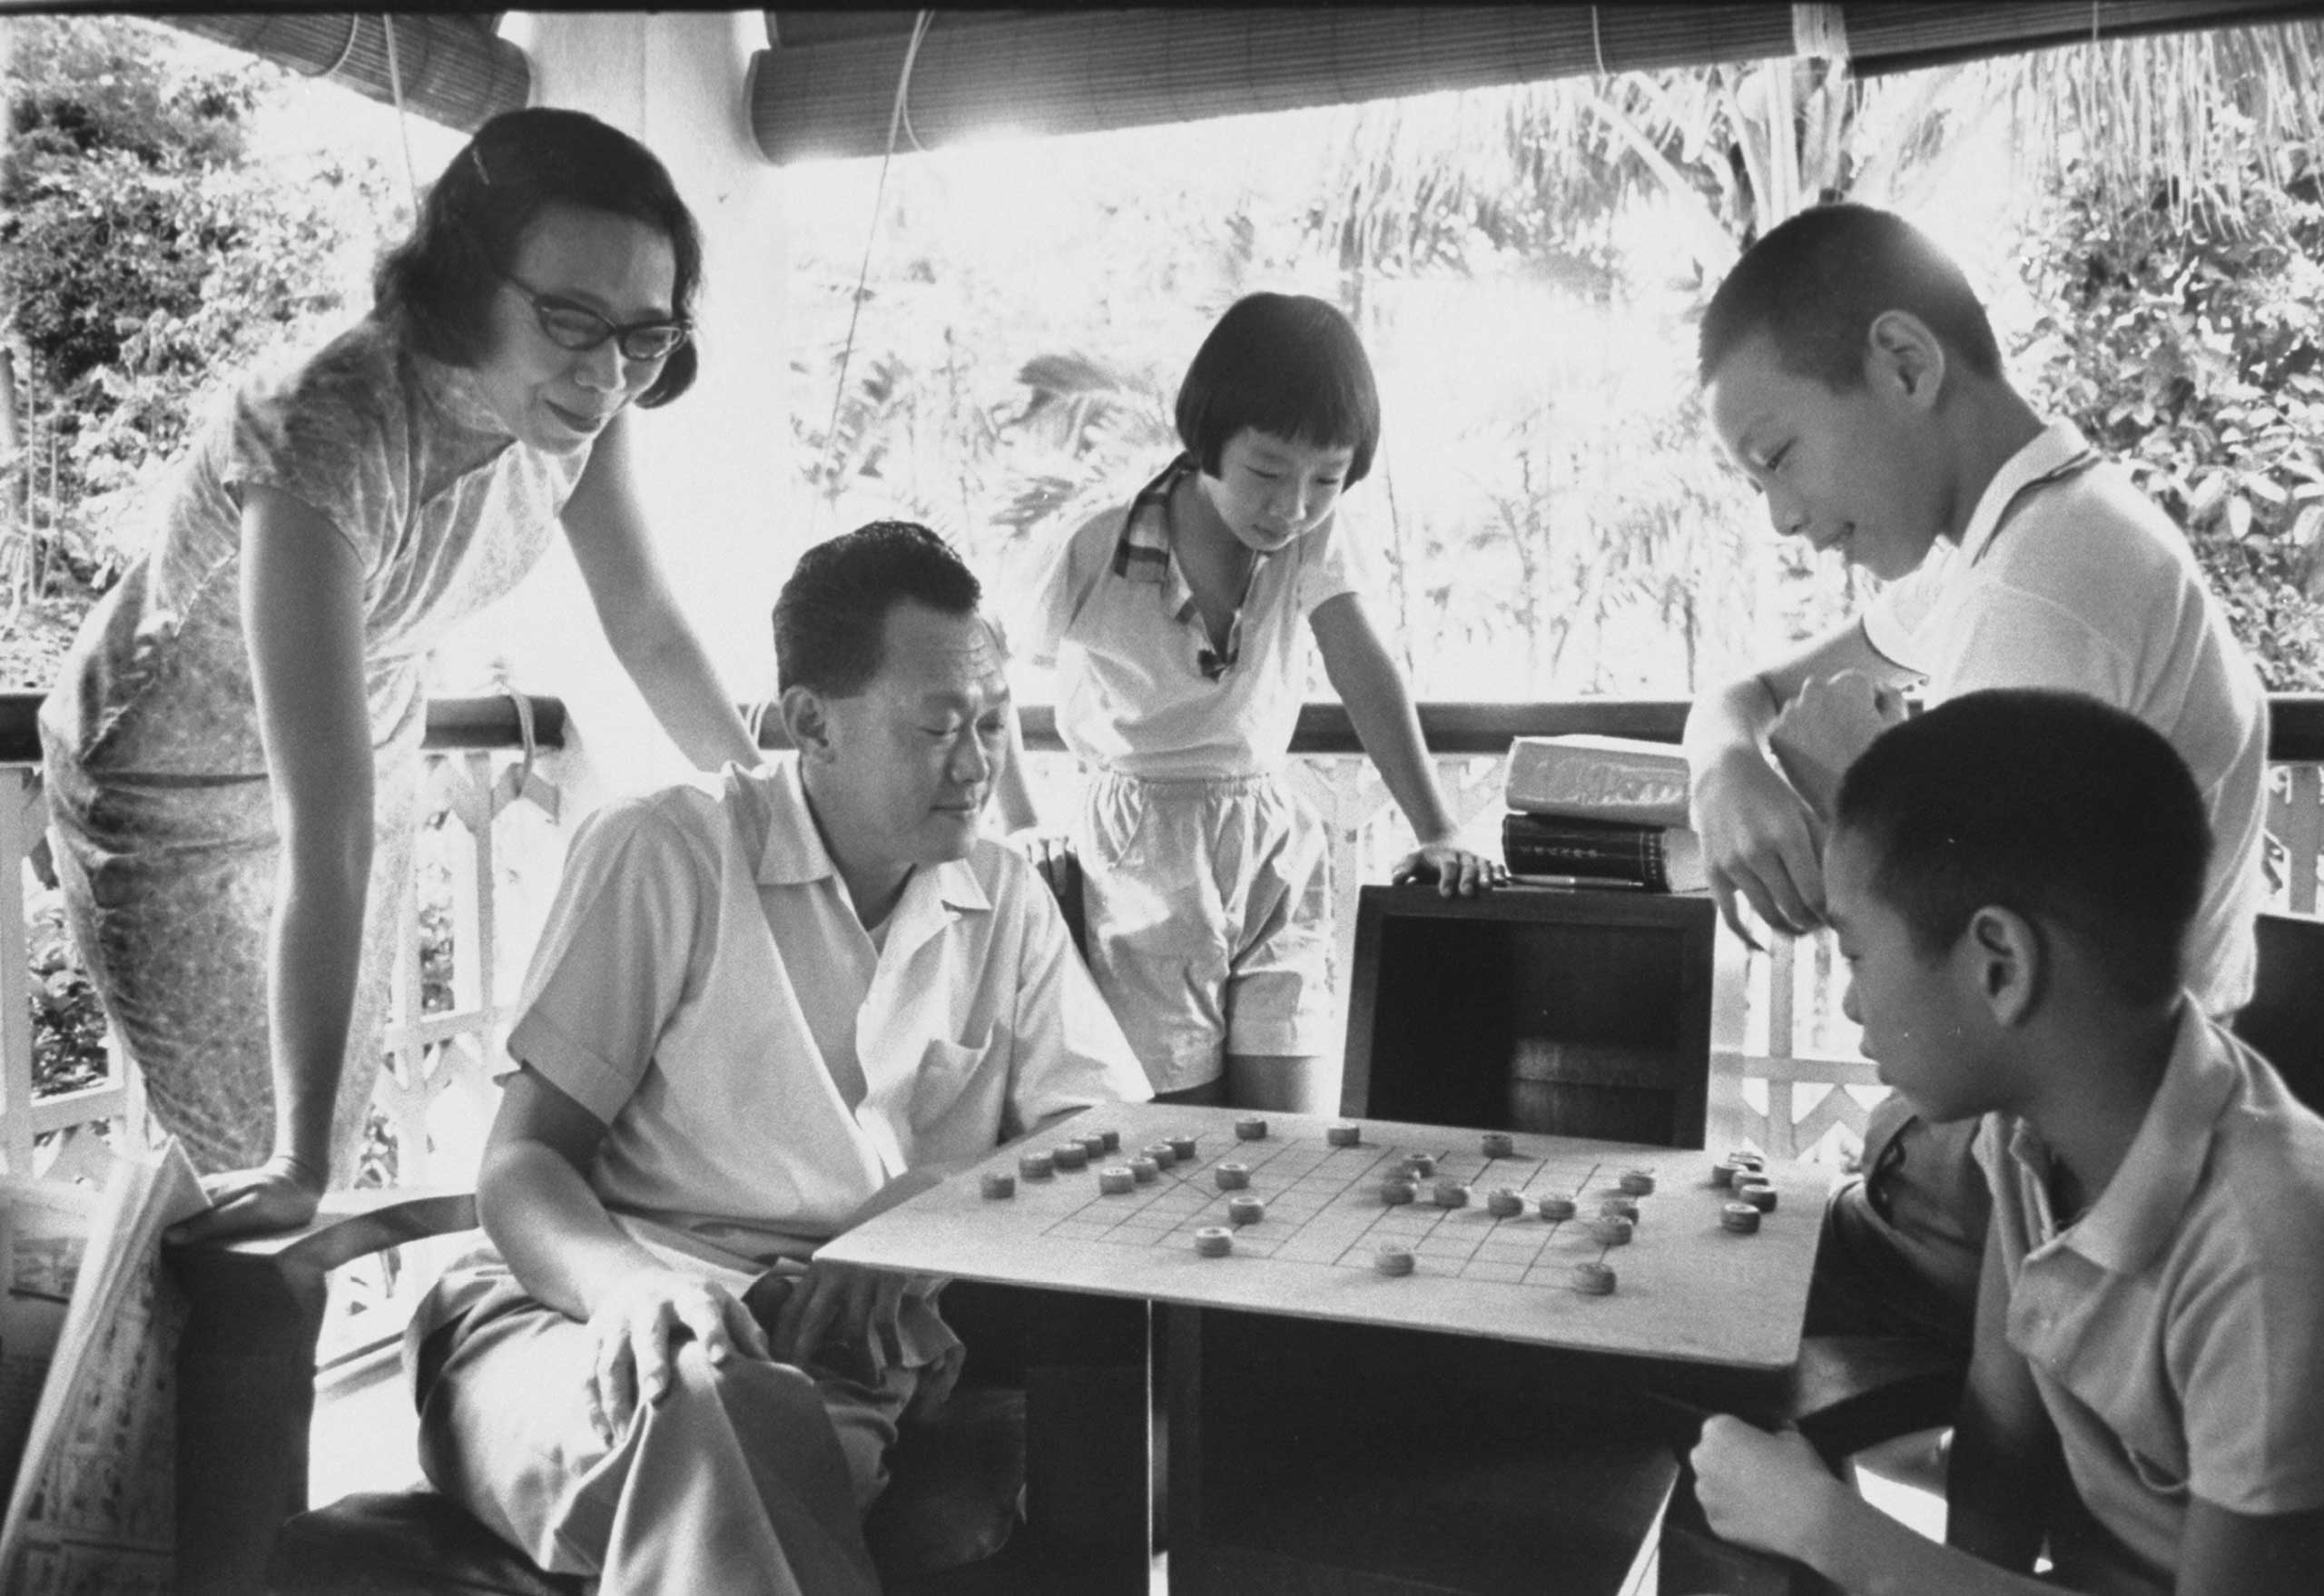 Prime Minister Lee Kuan Yew at home with his family playing Chinese chess in 1965.